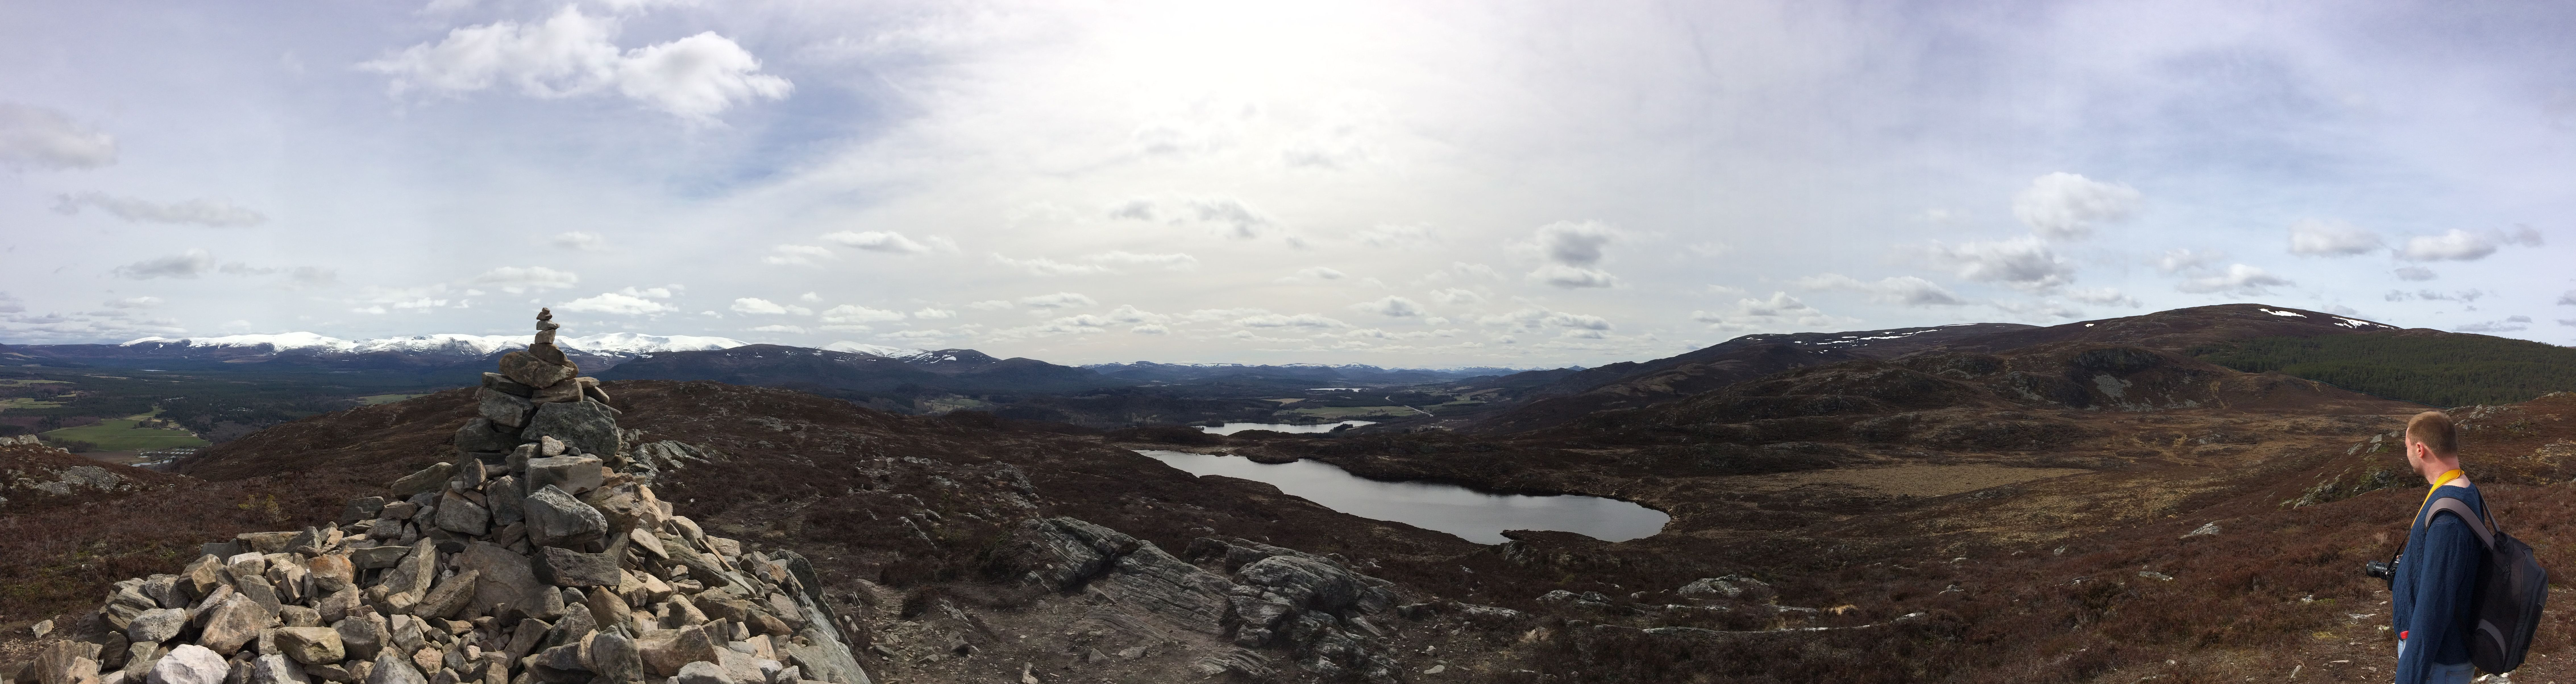 Panoramic view from the top of Craigellachie Nature Reserve, Aviemore, Scotland.